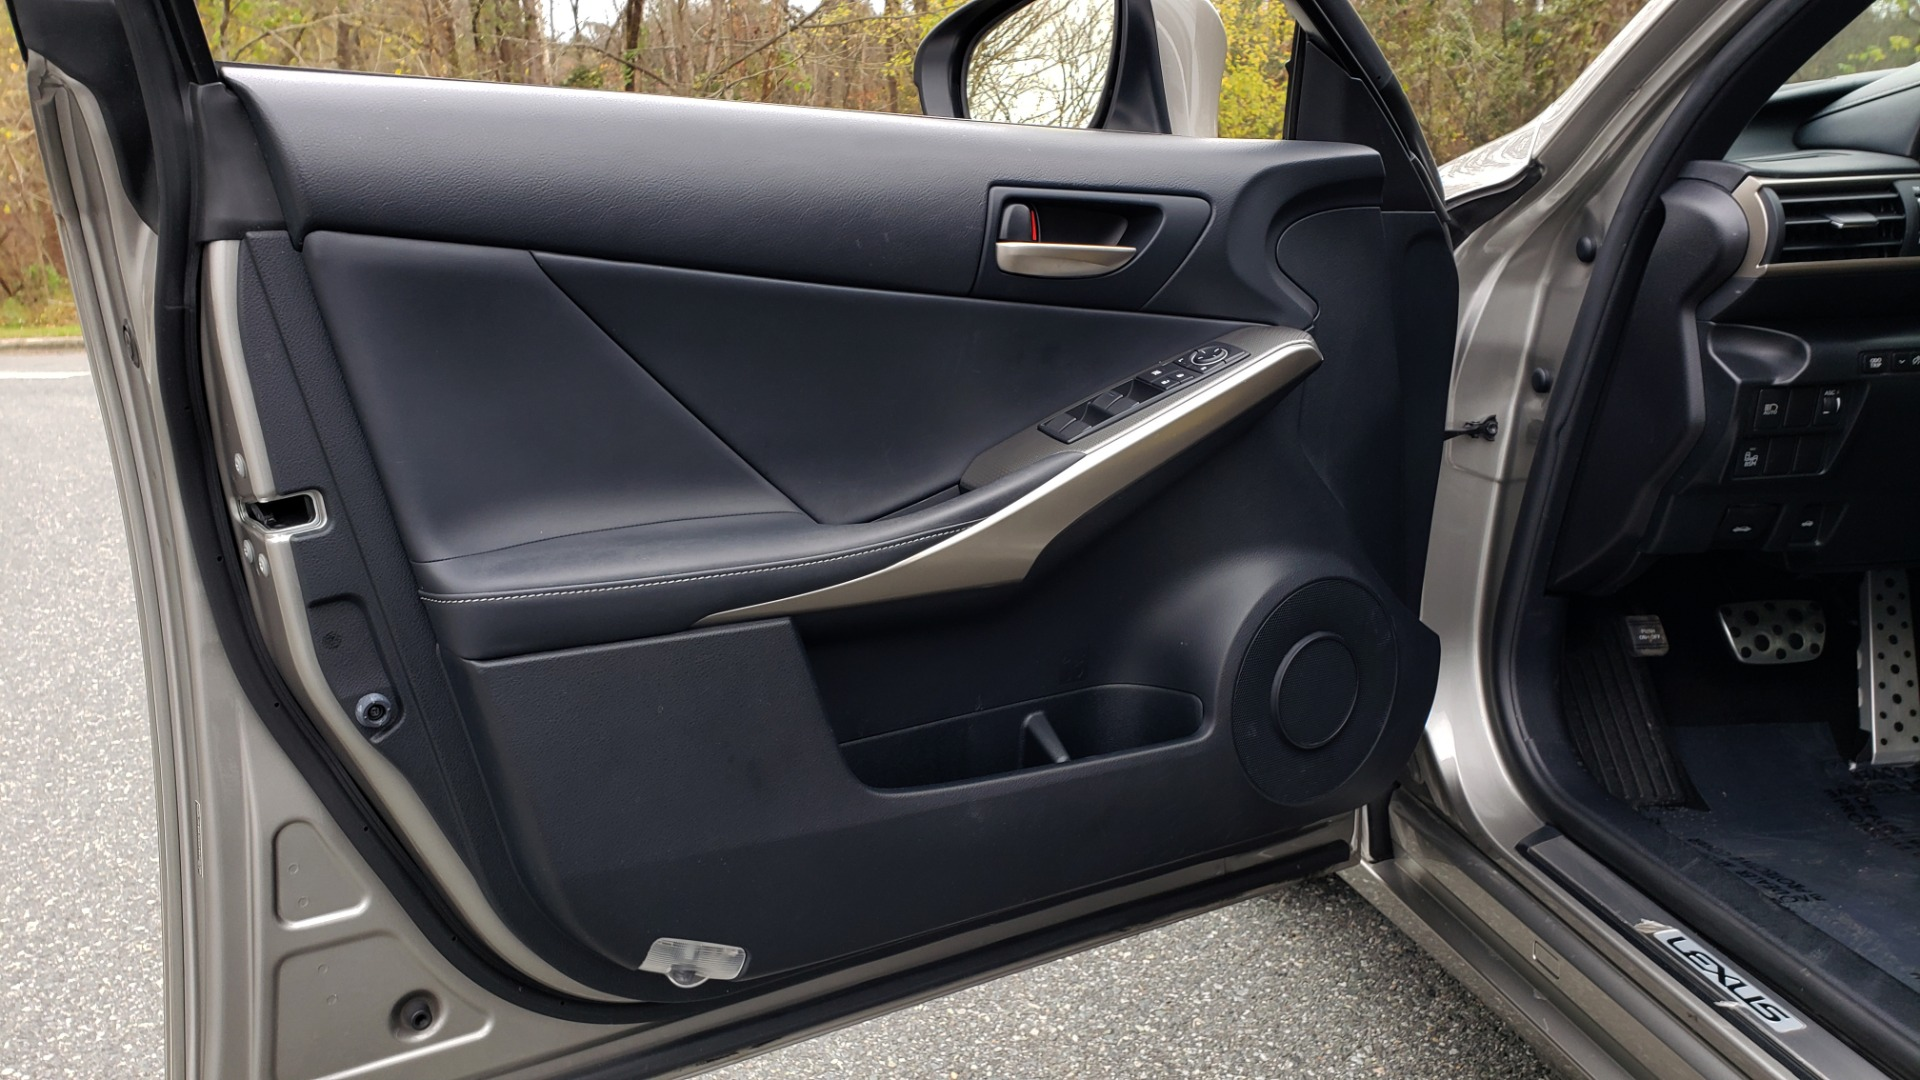 Used 2017 Lexus IS 200 TURBO F-SPORT / BSM / SUNROOF / VENT SEATS / REARVIEW for sale Sold at Formula Imports in Charlotte NC 28227 35